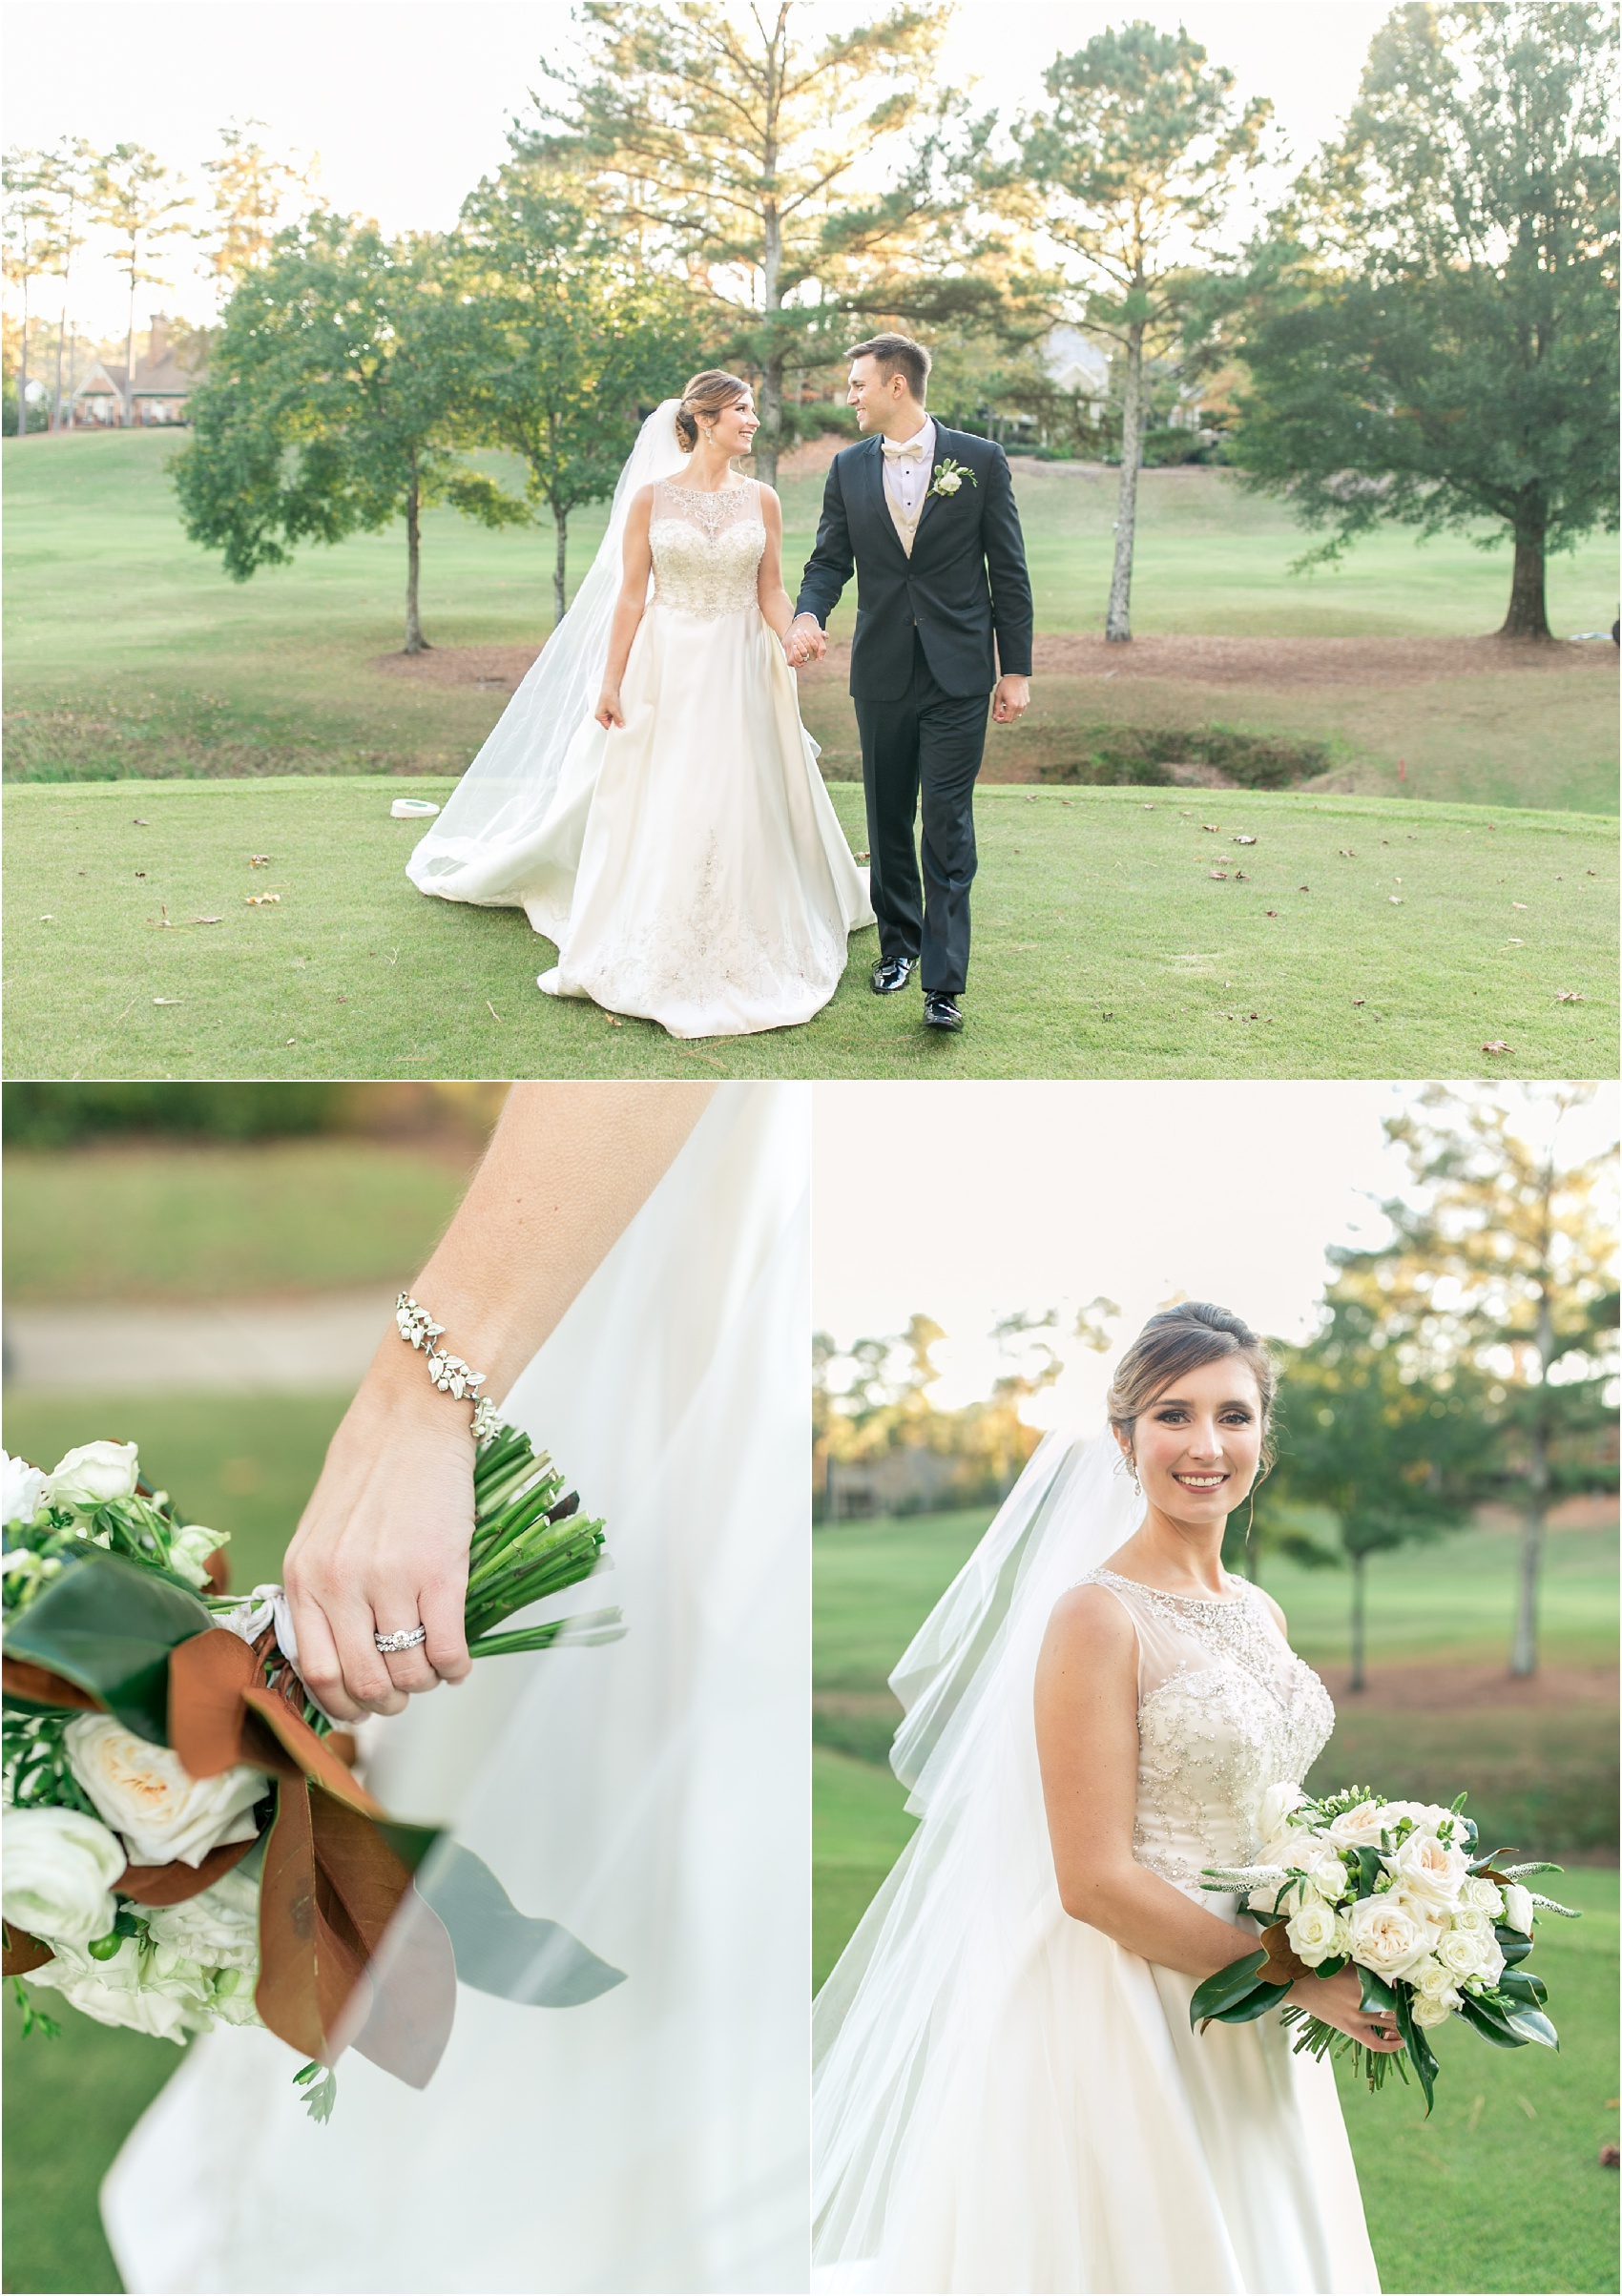 Savannah Eve Photography- Bottiglion-Scope Wedding- Sneak Peek-47.jpg